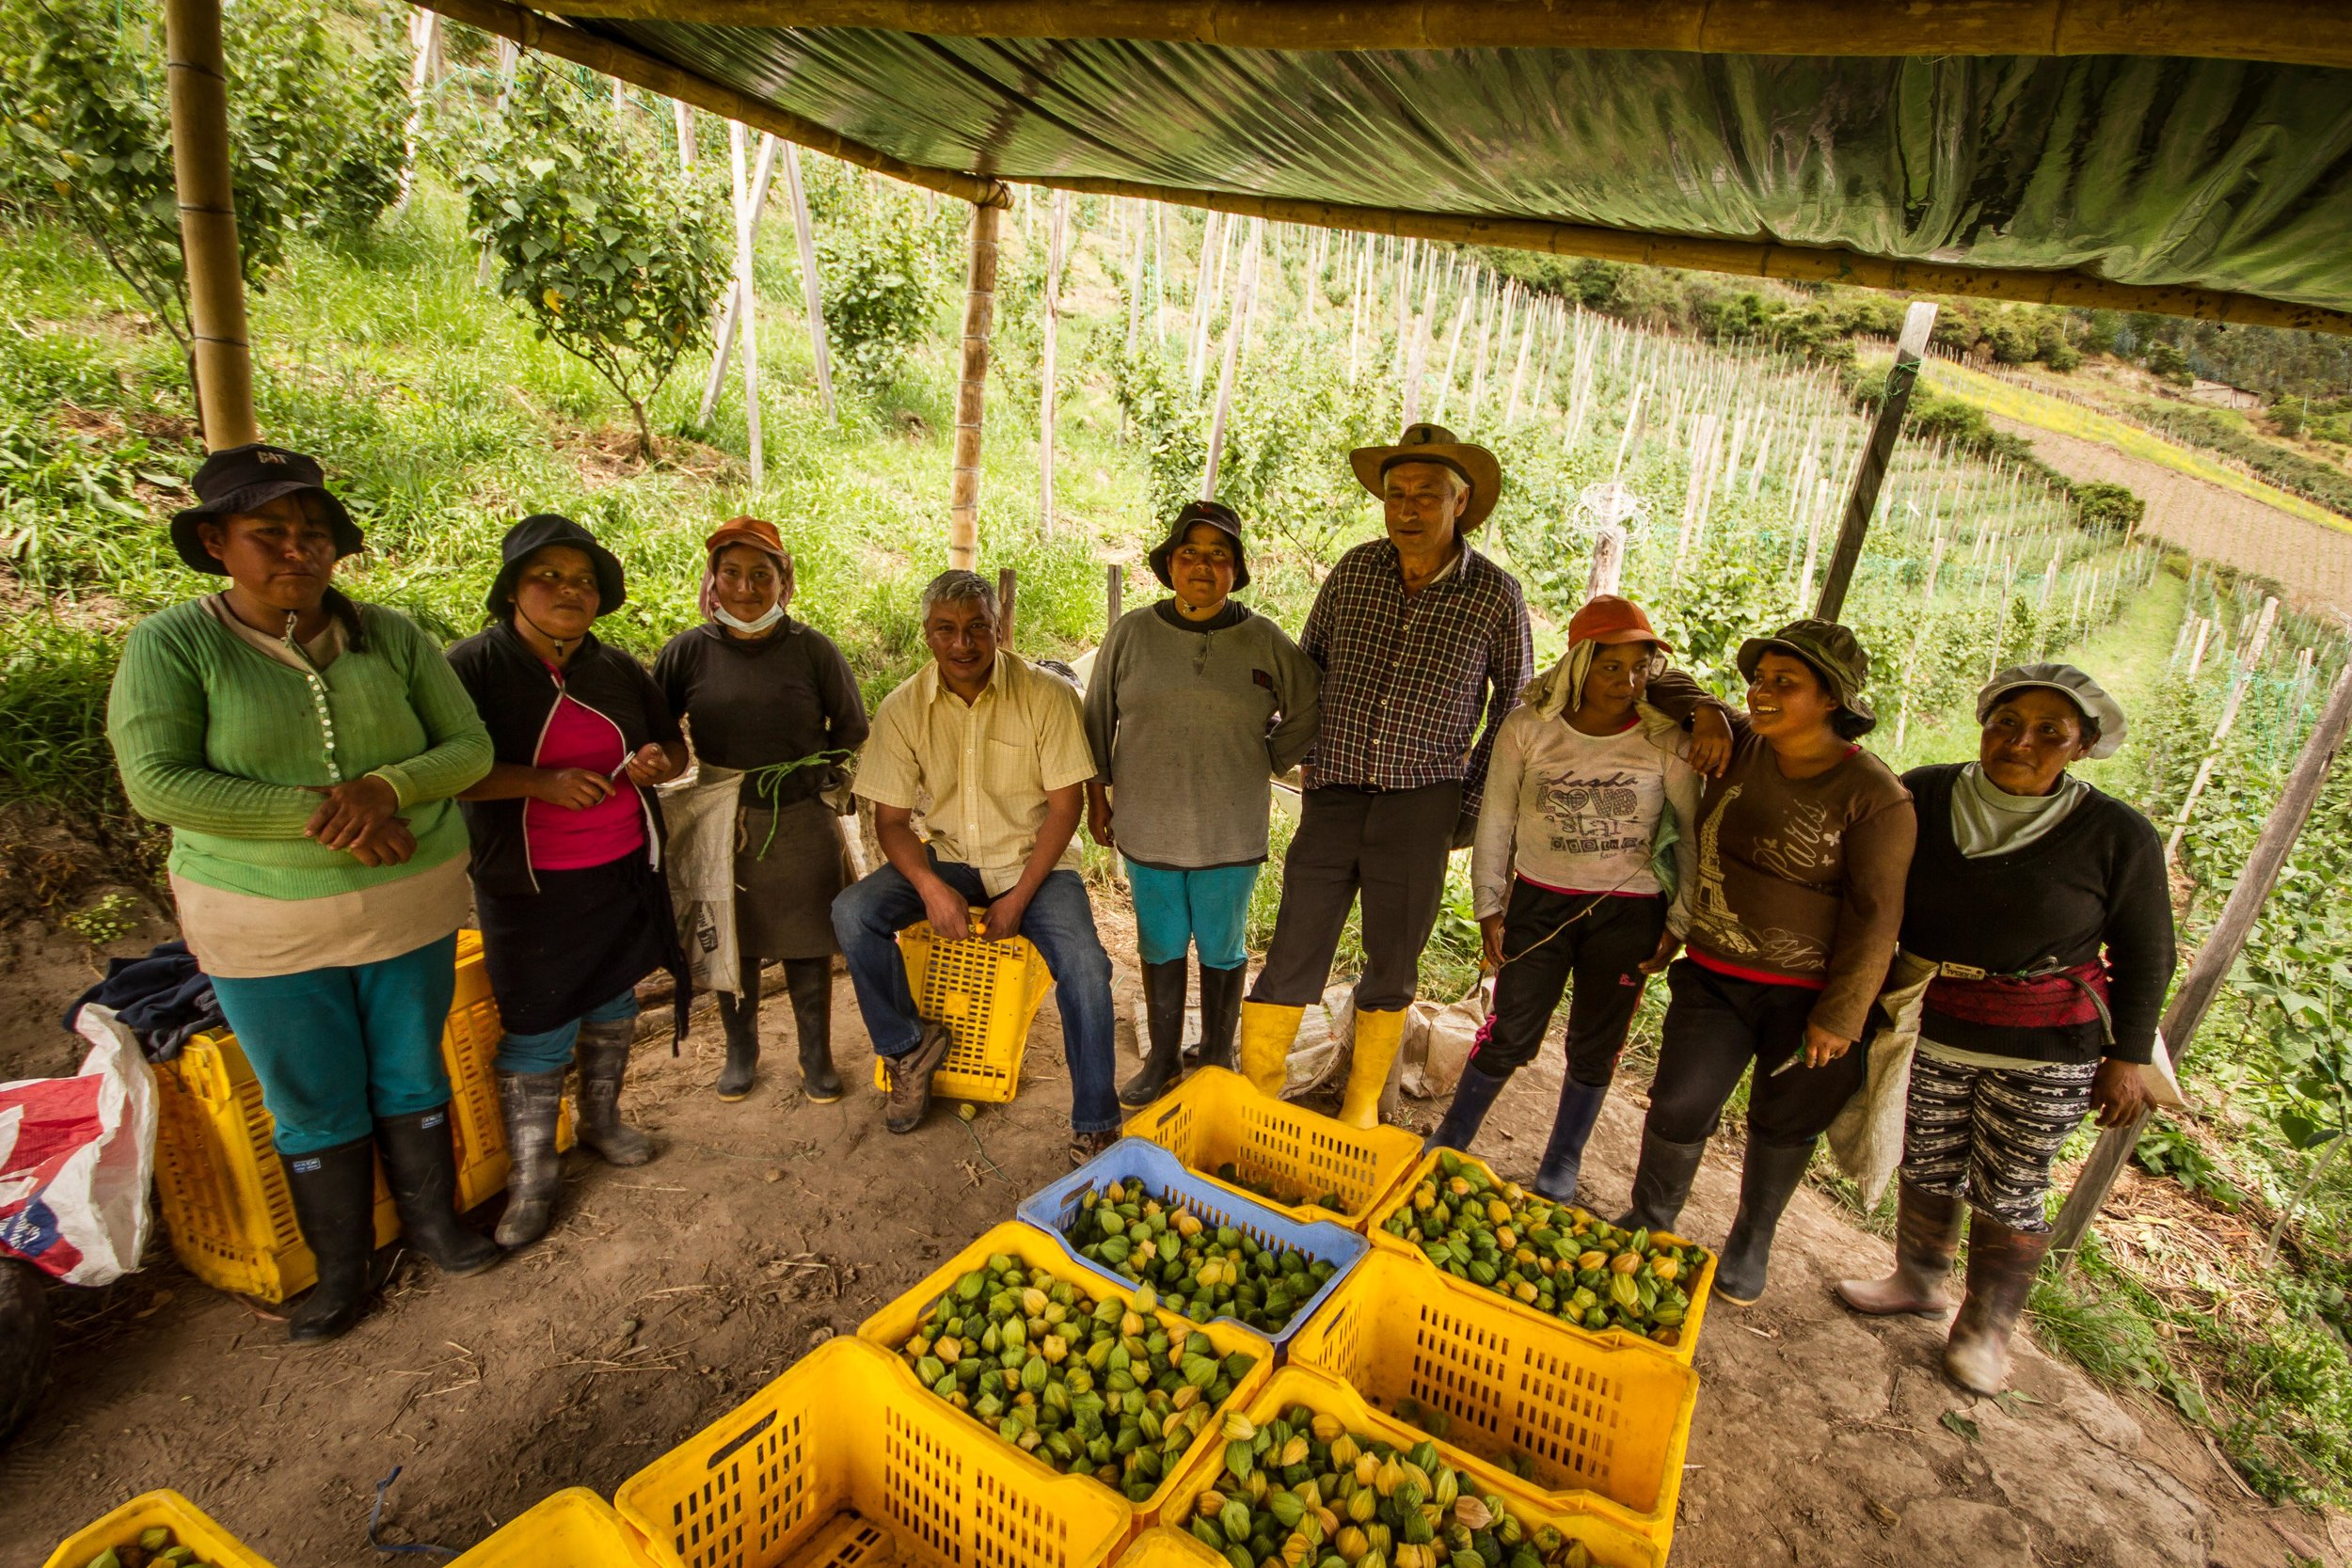 Albiero (centre left) and his father (centre right) along with the women who work on Albiero's farm.